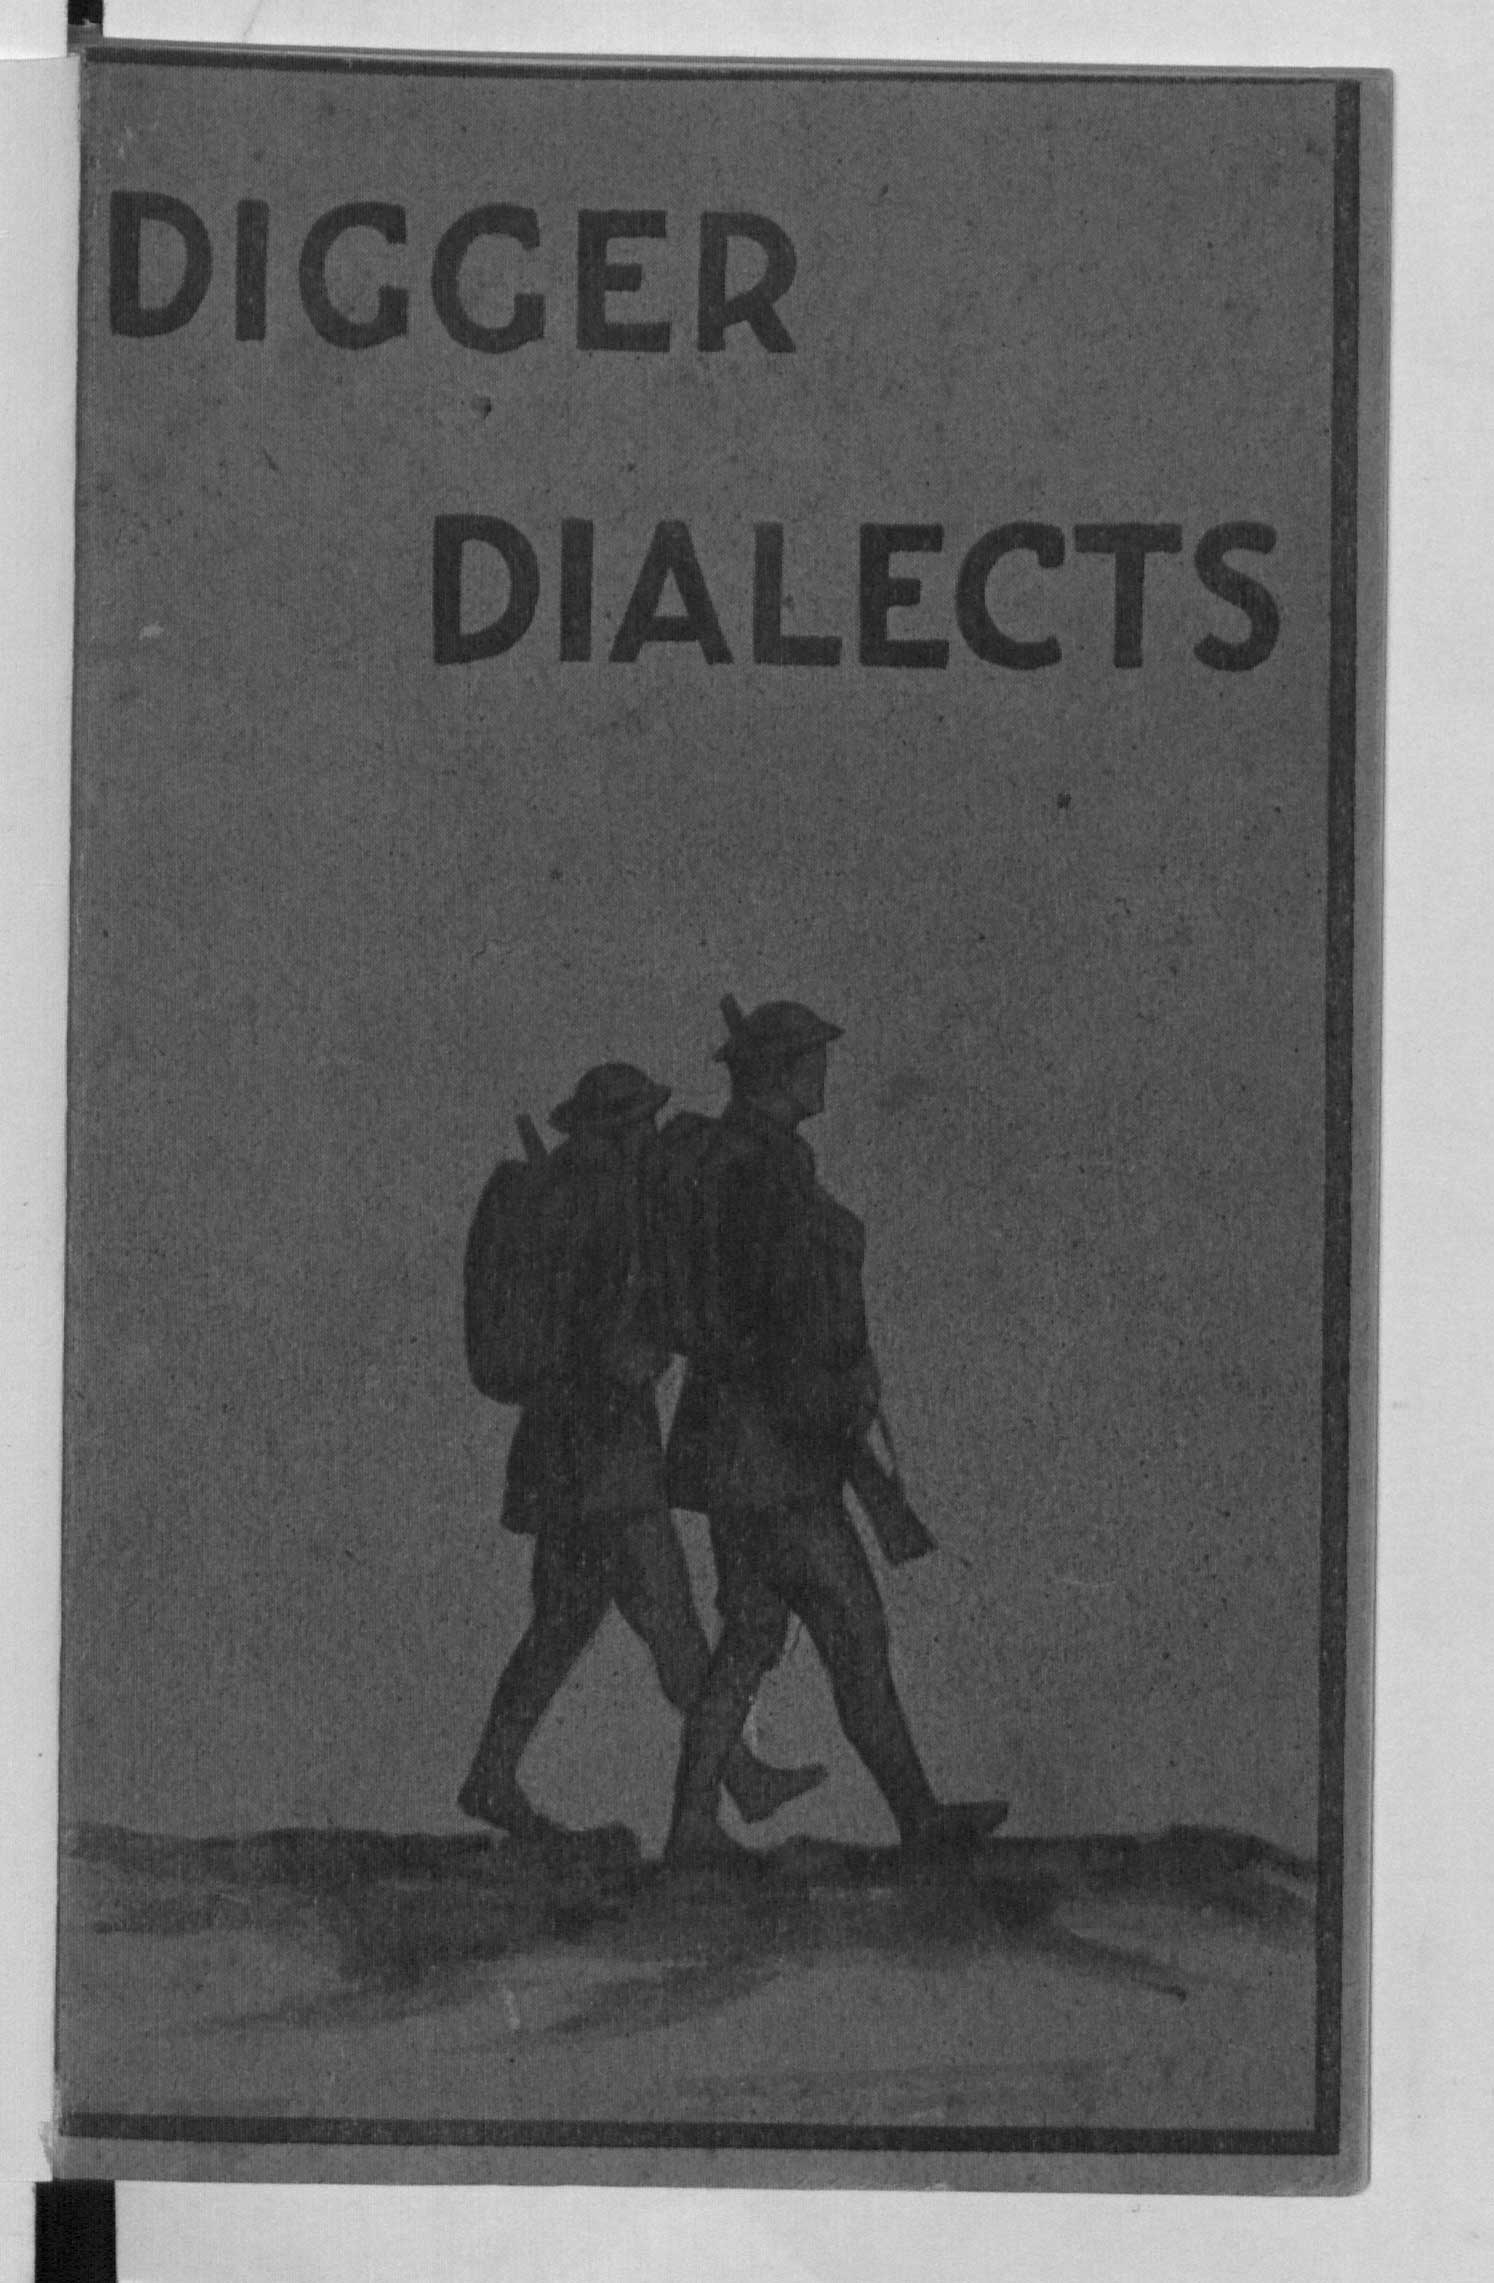 Digger dialects: a collection of slang phrases used by Australian soldiers on active service